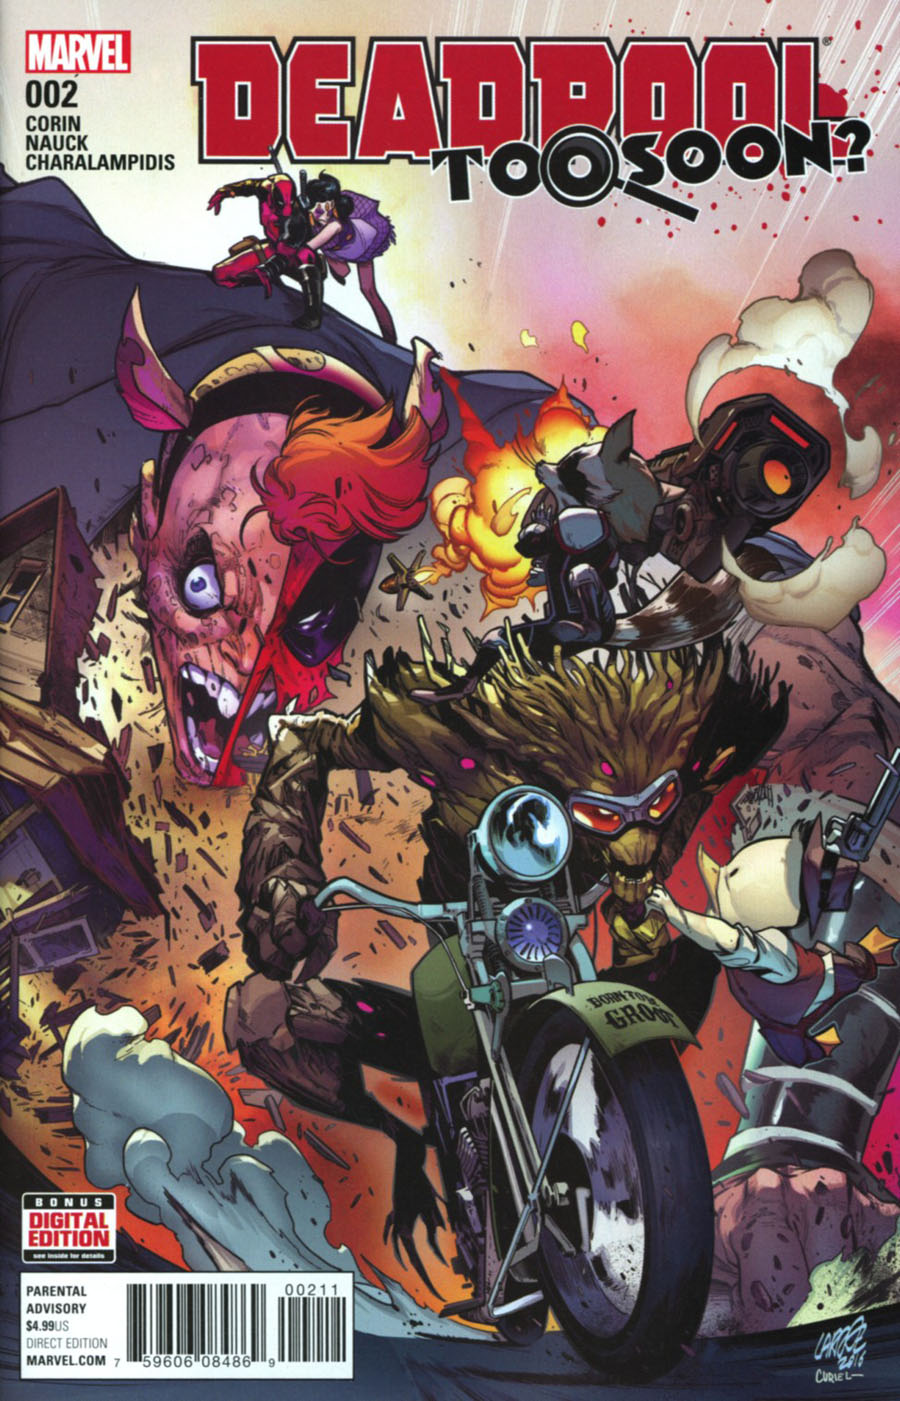 Deadpool Too Soon #2 Cover A Regular Pepe Larraz Cover